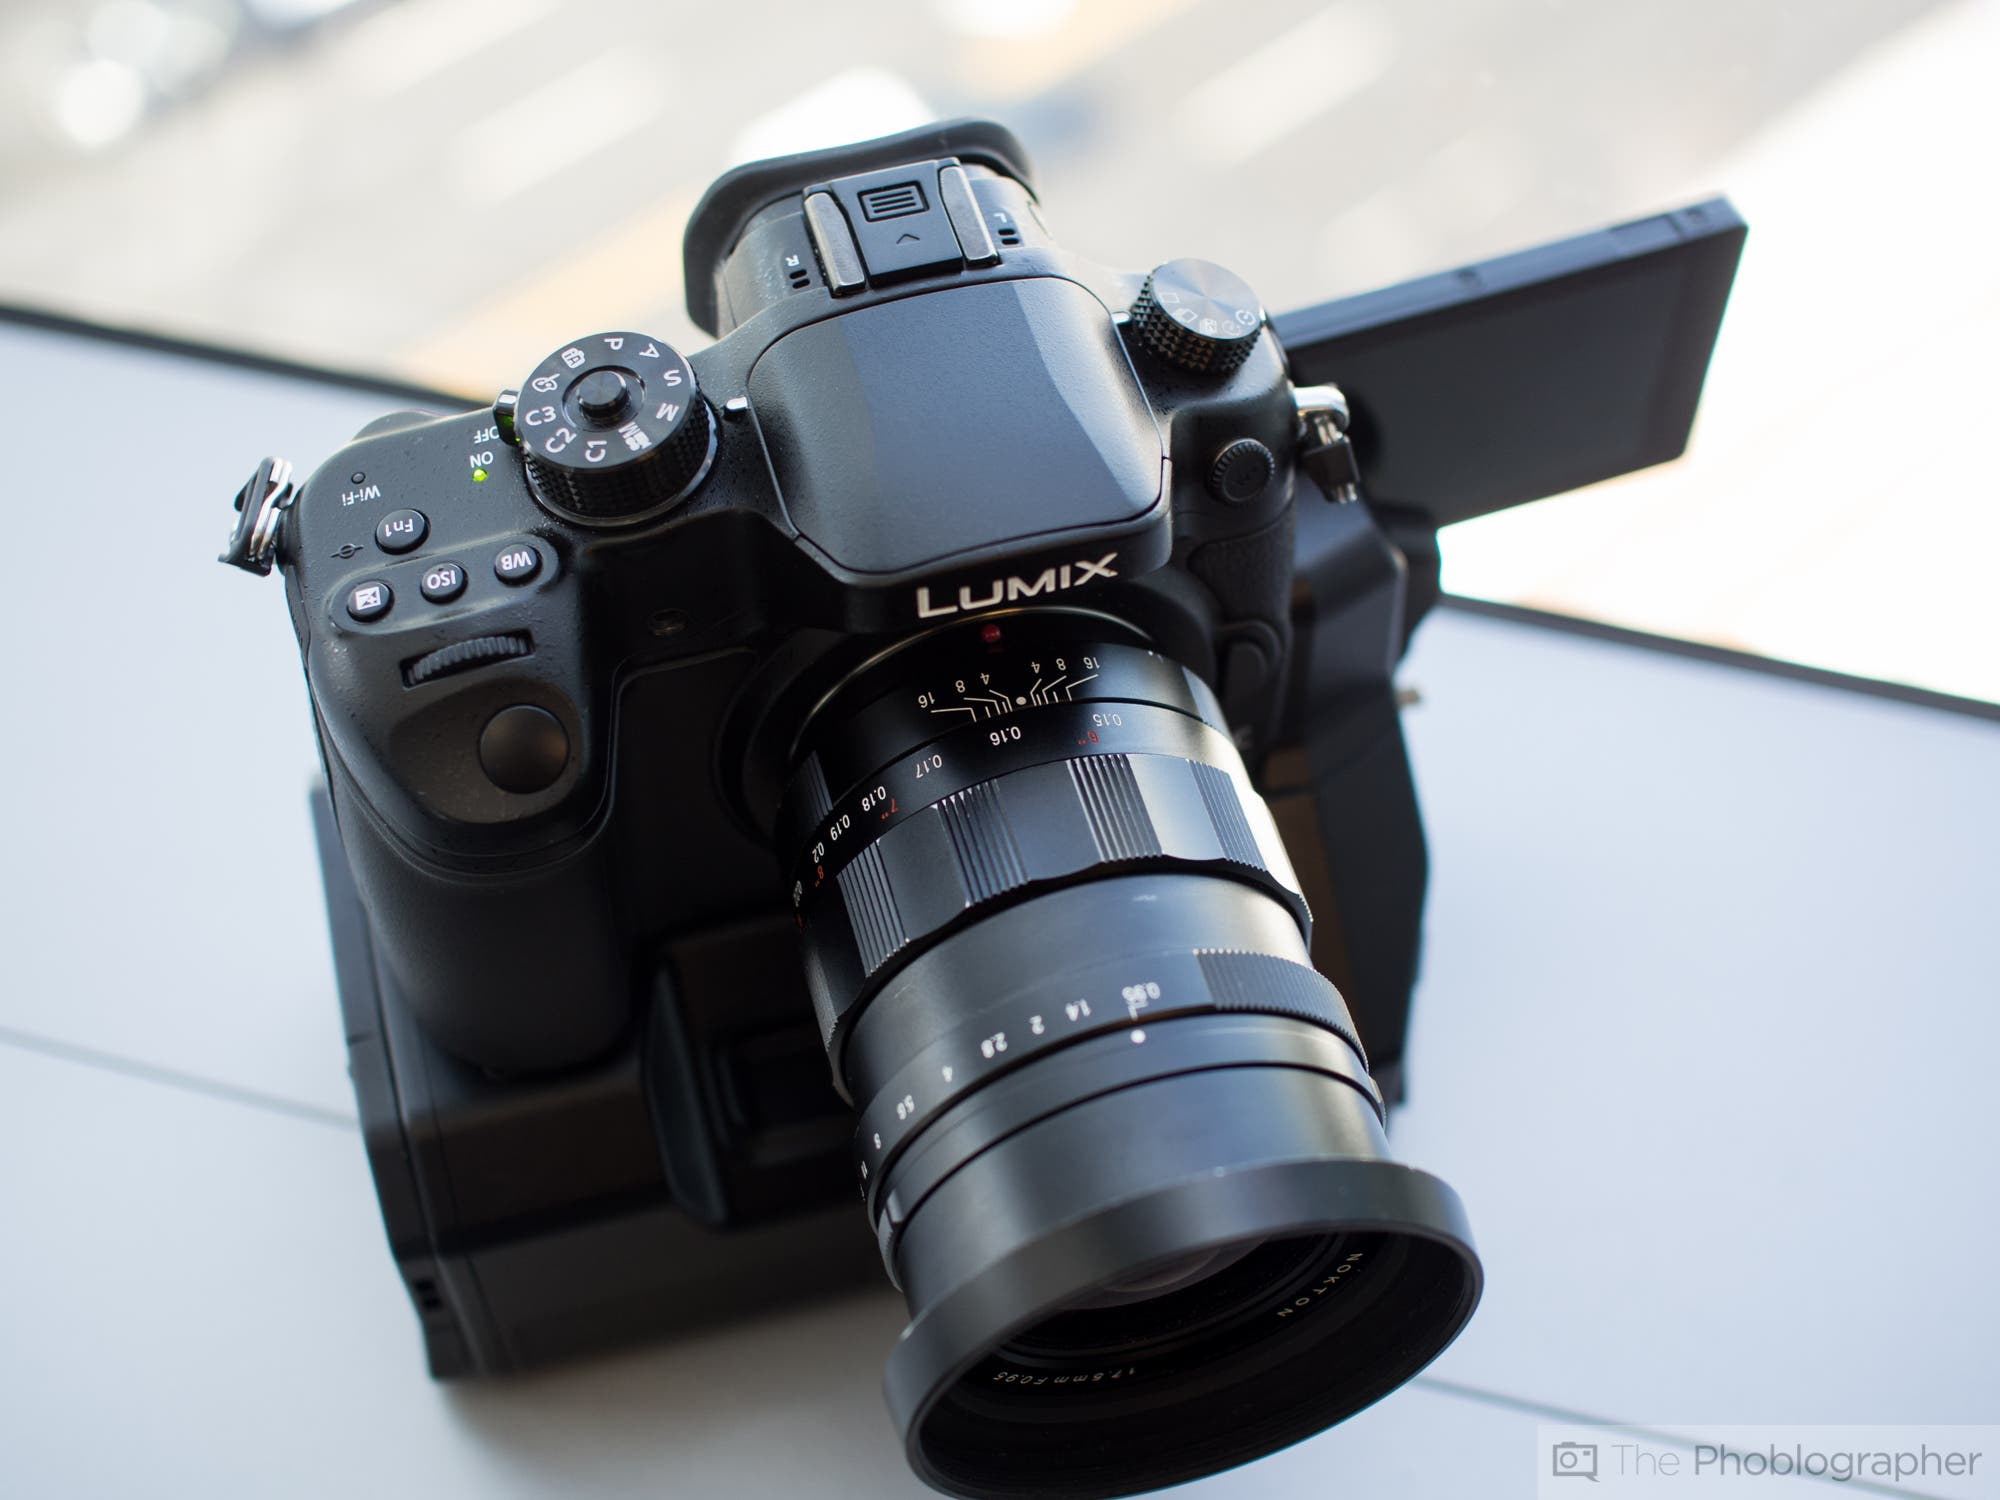 Panasonic Reports Profits Again, But Not From Camera Business